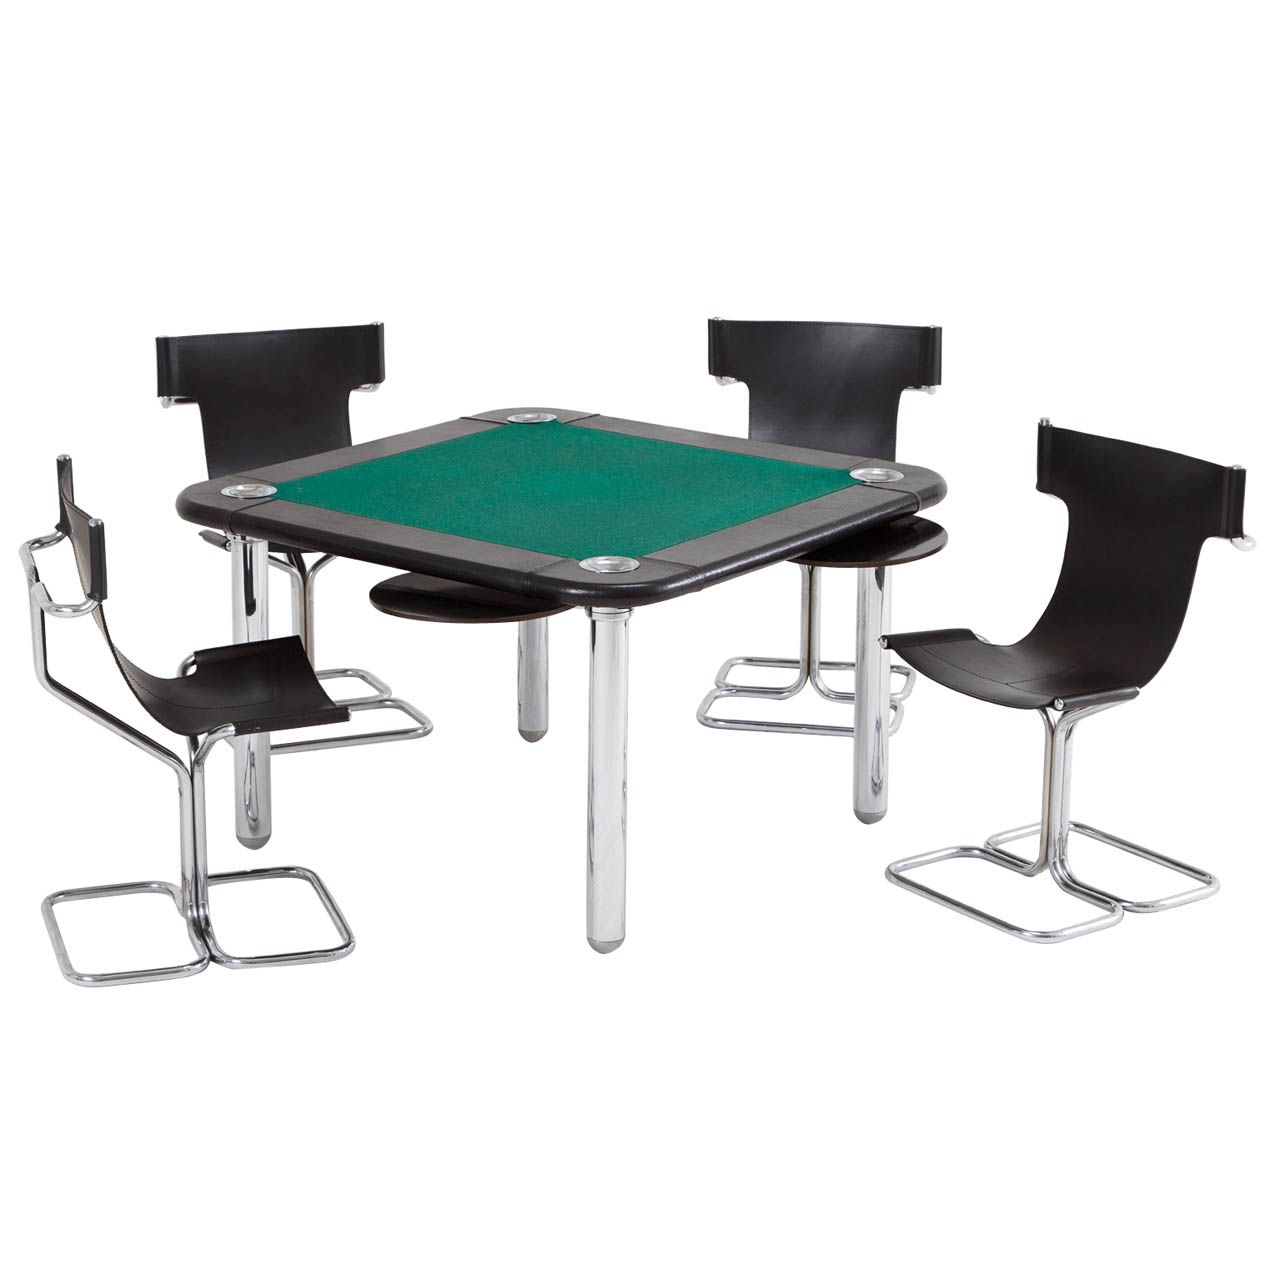 Chrome and Leather Game/Card Table and Chairs  Game table and